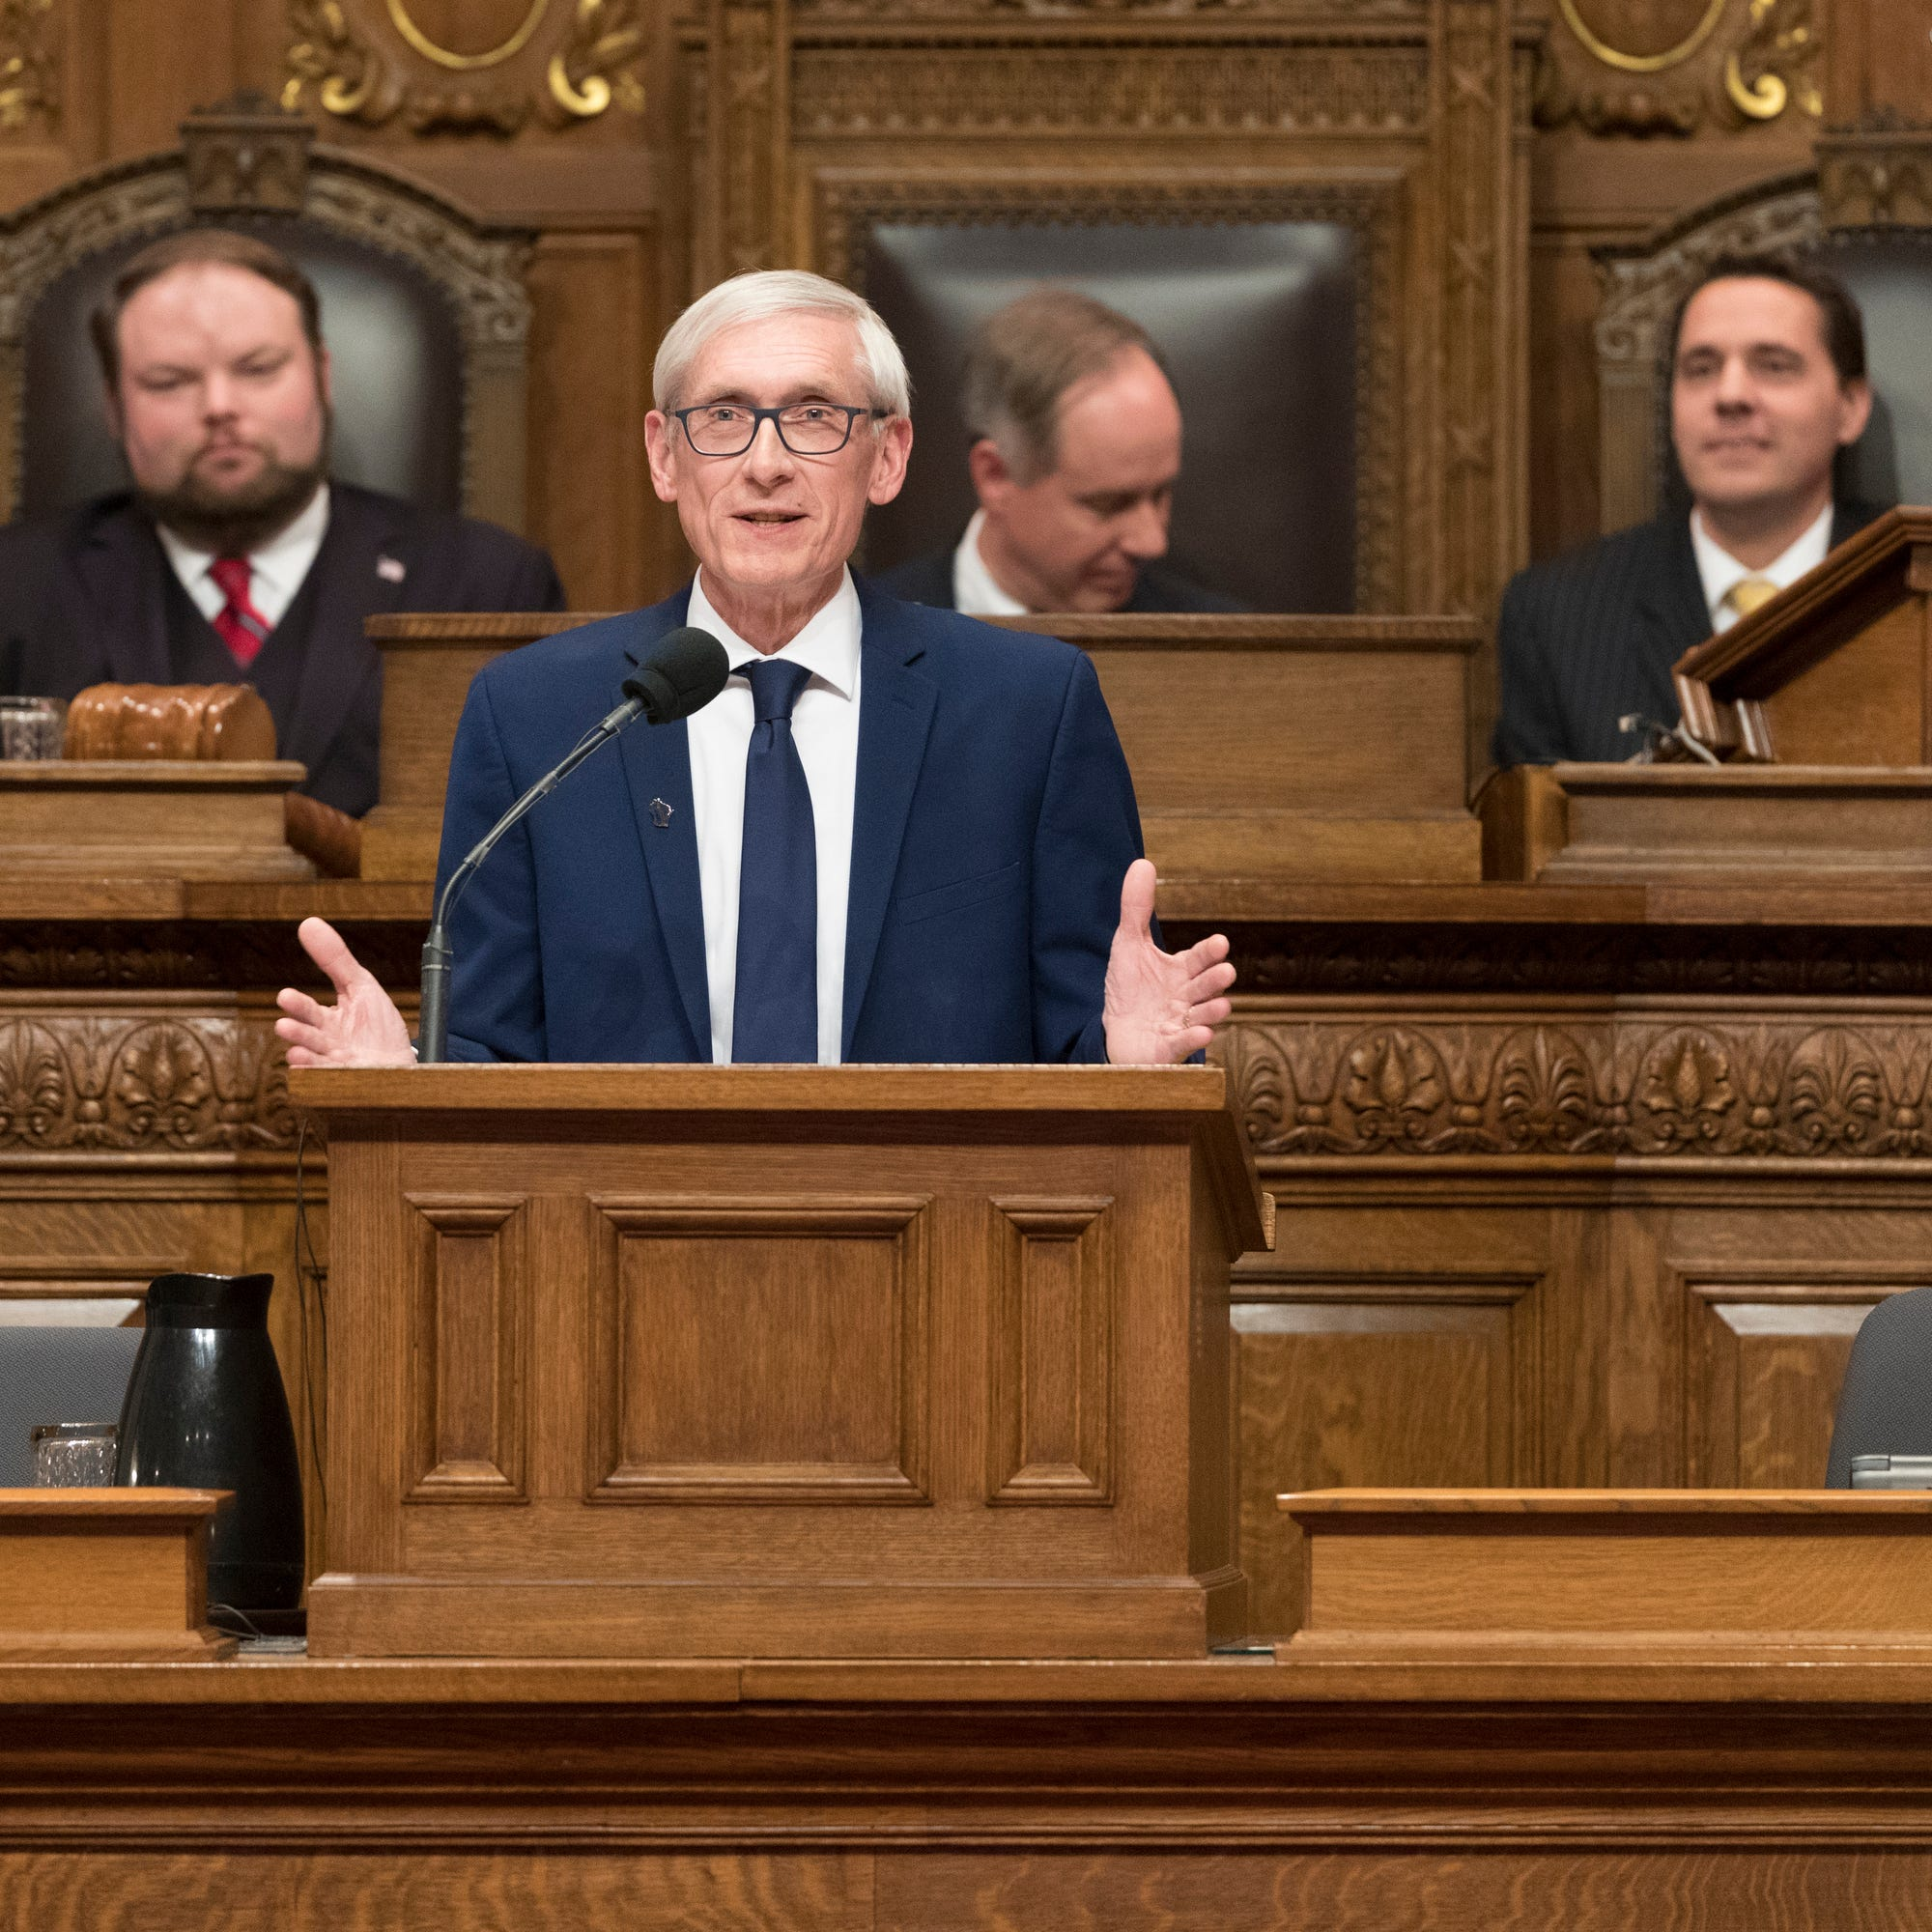 Gov. Tony Evers calls for decriminalization of recreational marijuana use